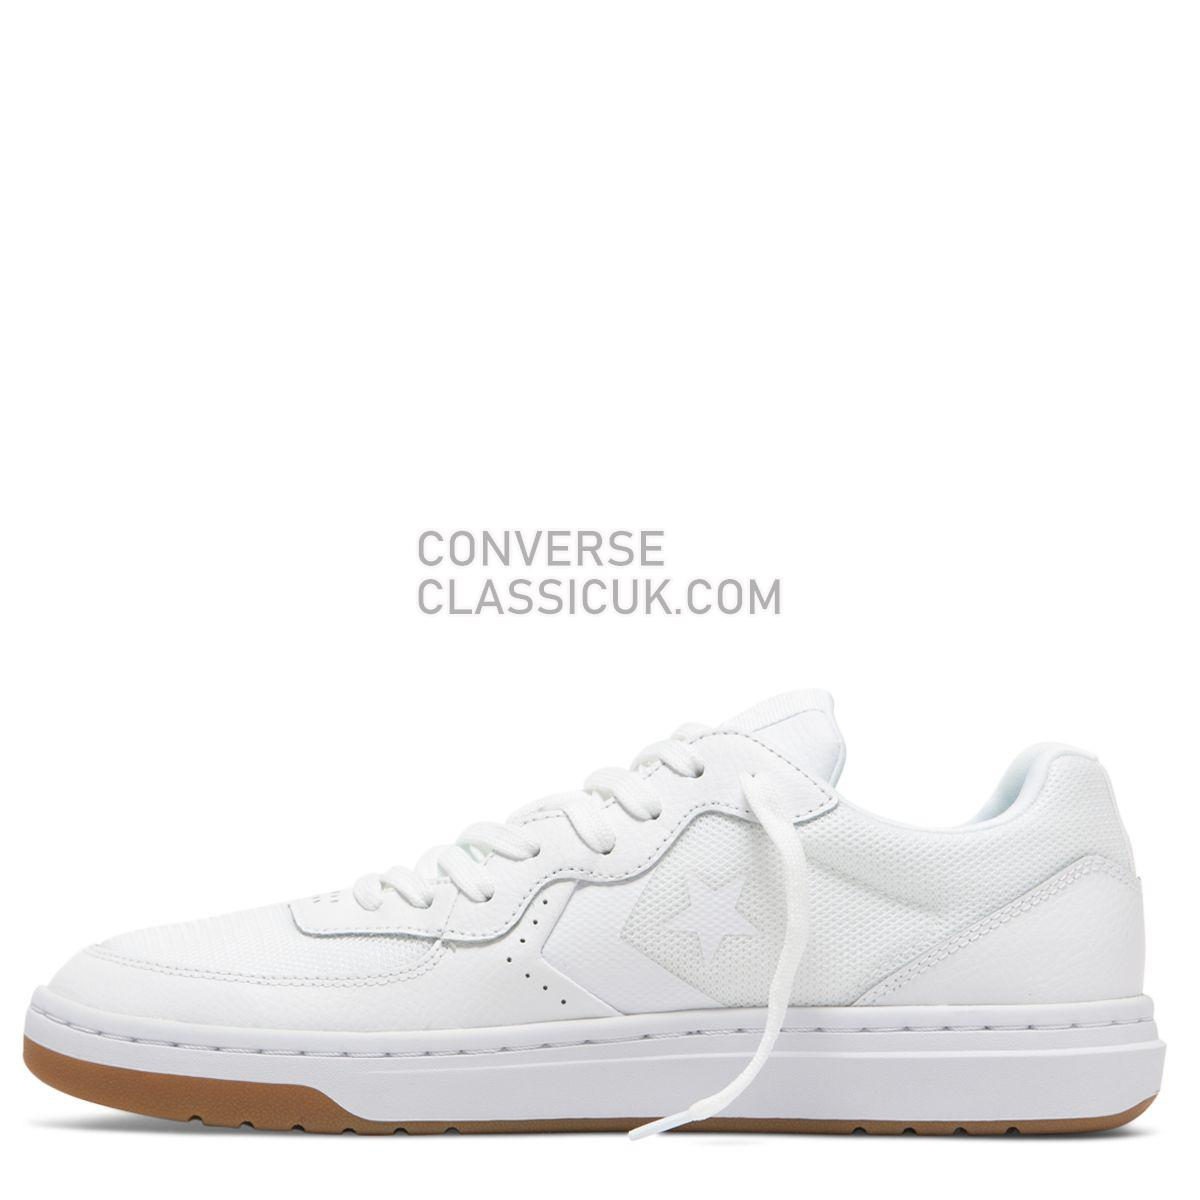 Converse Rival Leather Low Top White/White Mens 163206 White/White/Gum Shoes